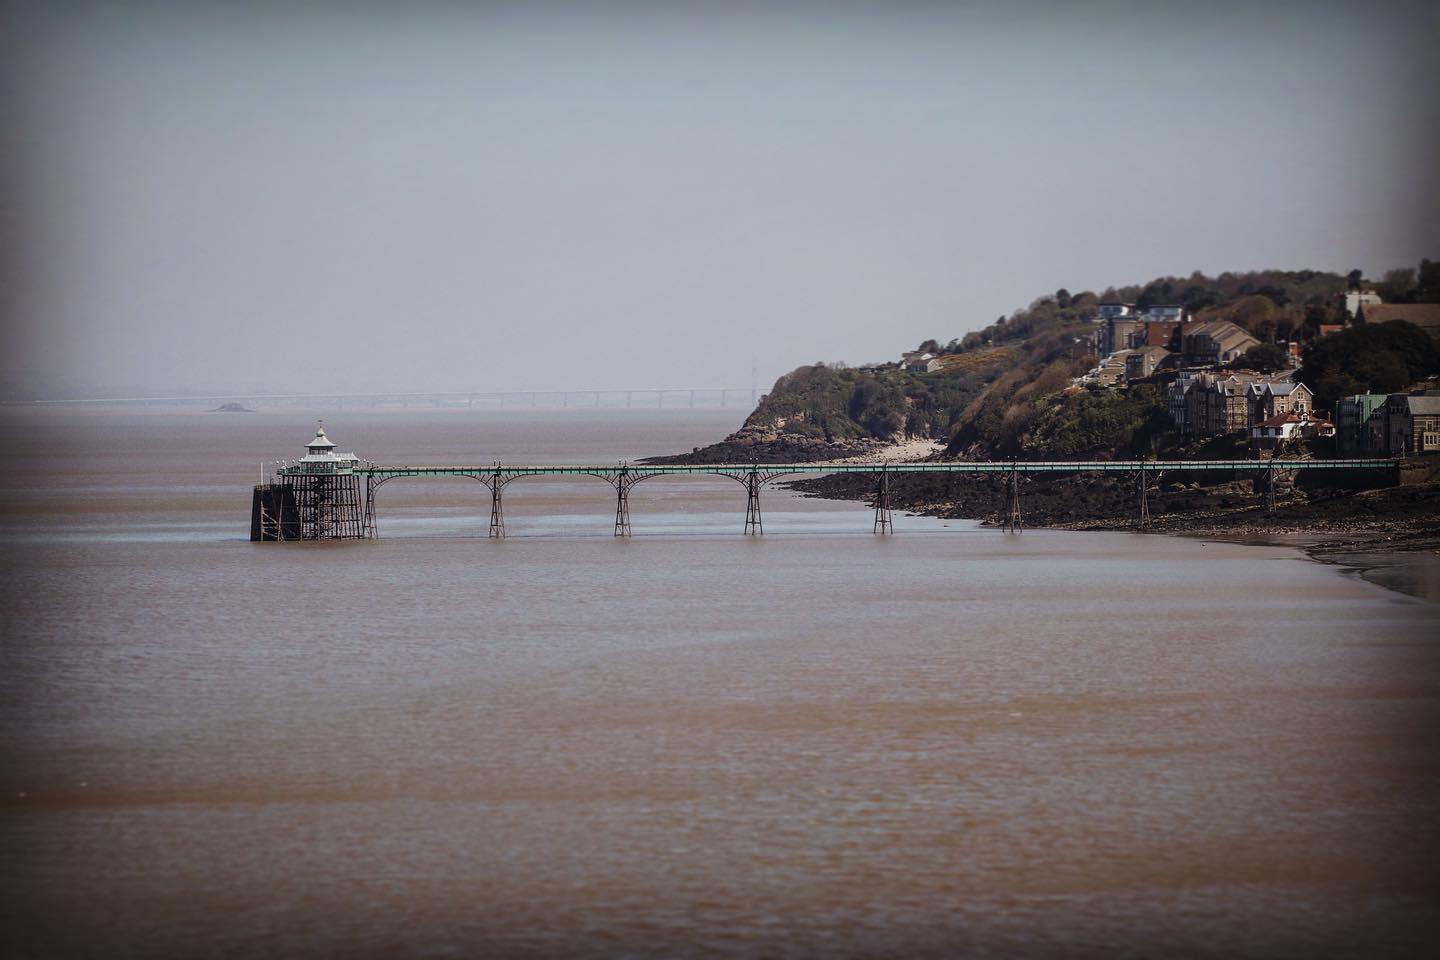 We have an exciting few weeks ahead of us with some great markets and events!The first being this coming Sunday, we are back in lovely Clevedon 10am -2pm at the top of Hill Road. The @clevedonsundaymarket is such a wonderful event, in a great location. One of our favourite things about the market is the local support and community that surrounds it, as well as the fact that stalls are dotted around a few of the streets so you can have a nice wander around the area. ️ ...#clevedon #localmarket #community #bythesea #explore #shop #smallbusinesssupport #marketday #home